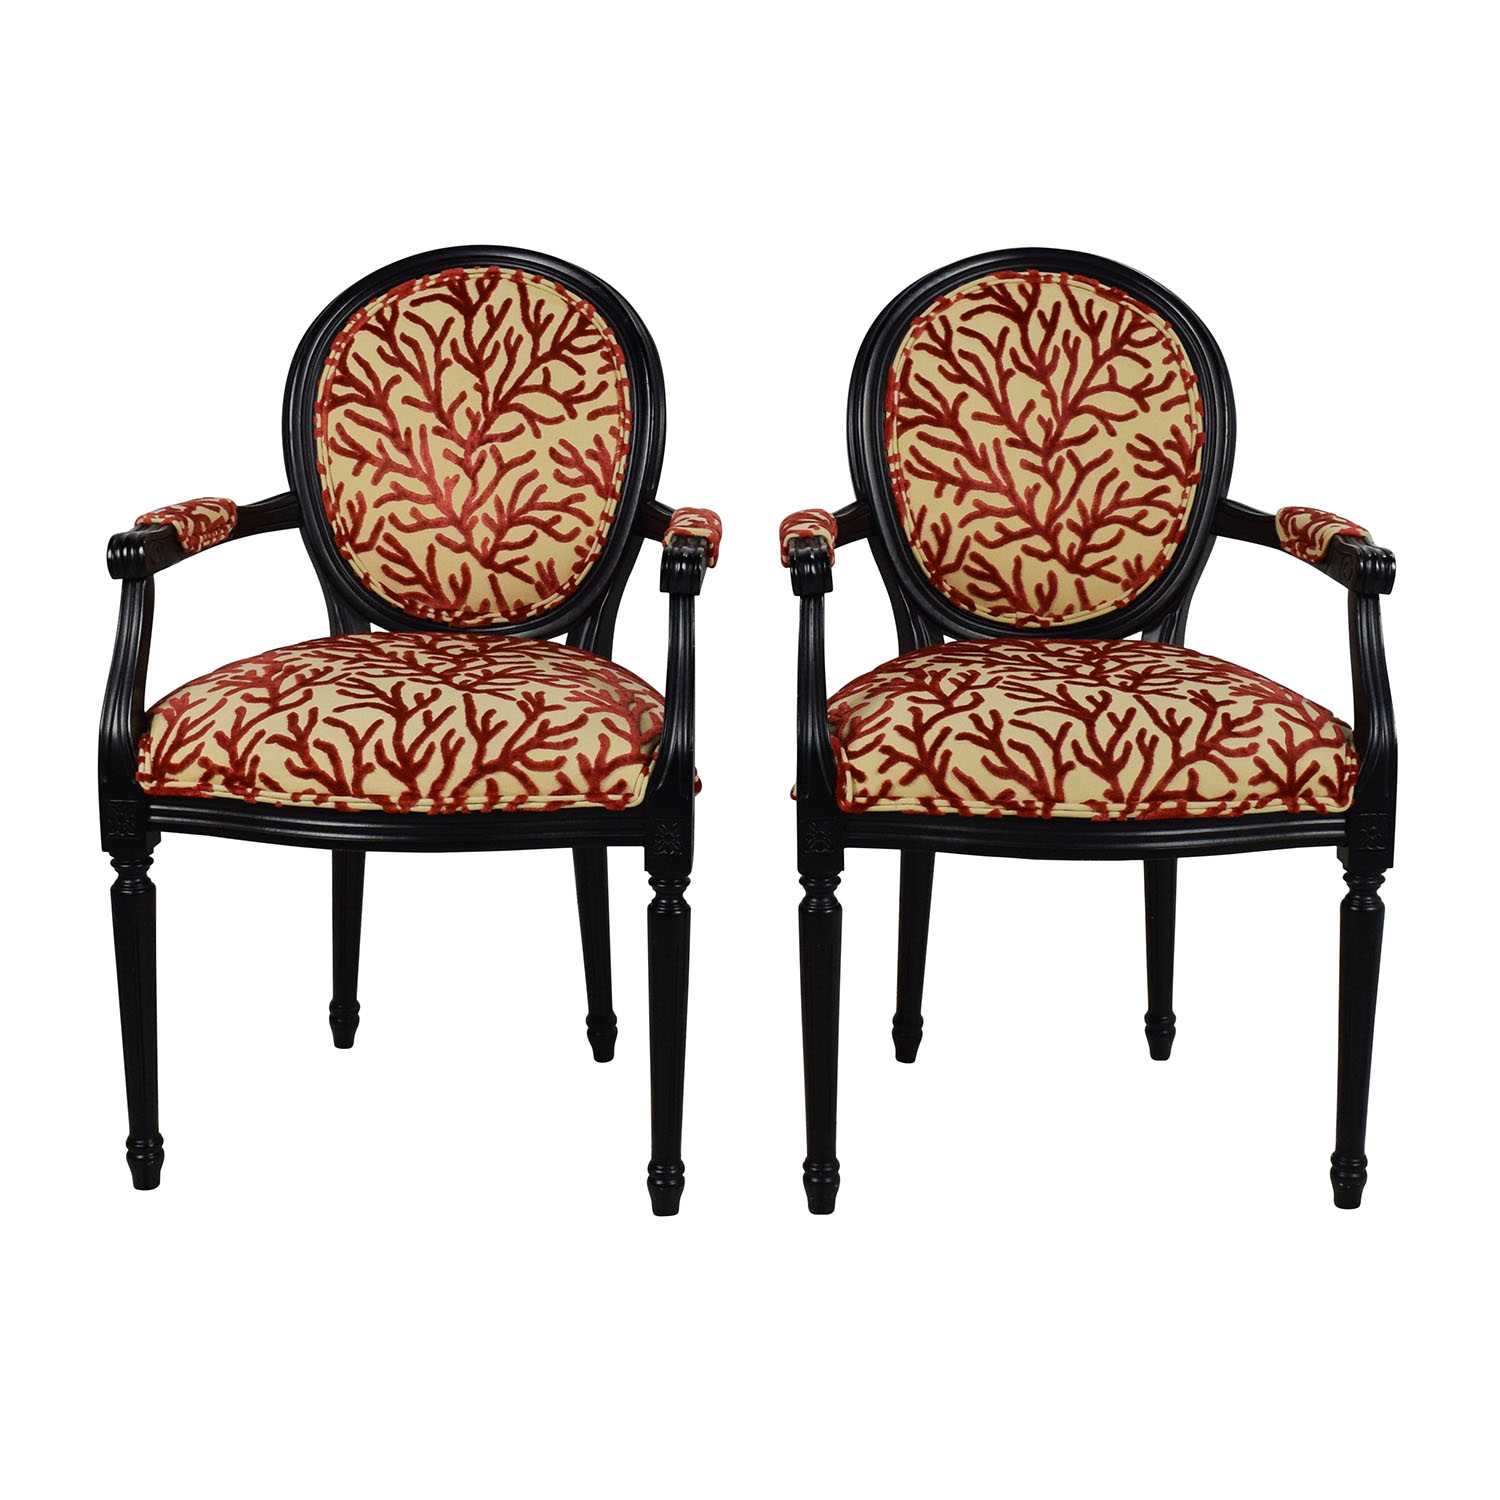 ballard designs upholstered dining chairs chair covers for banquet 84 off oval back louis